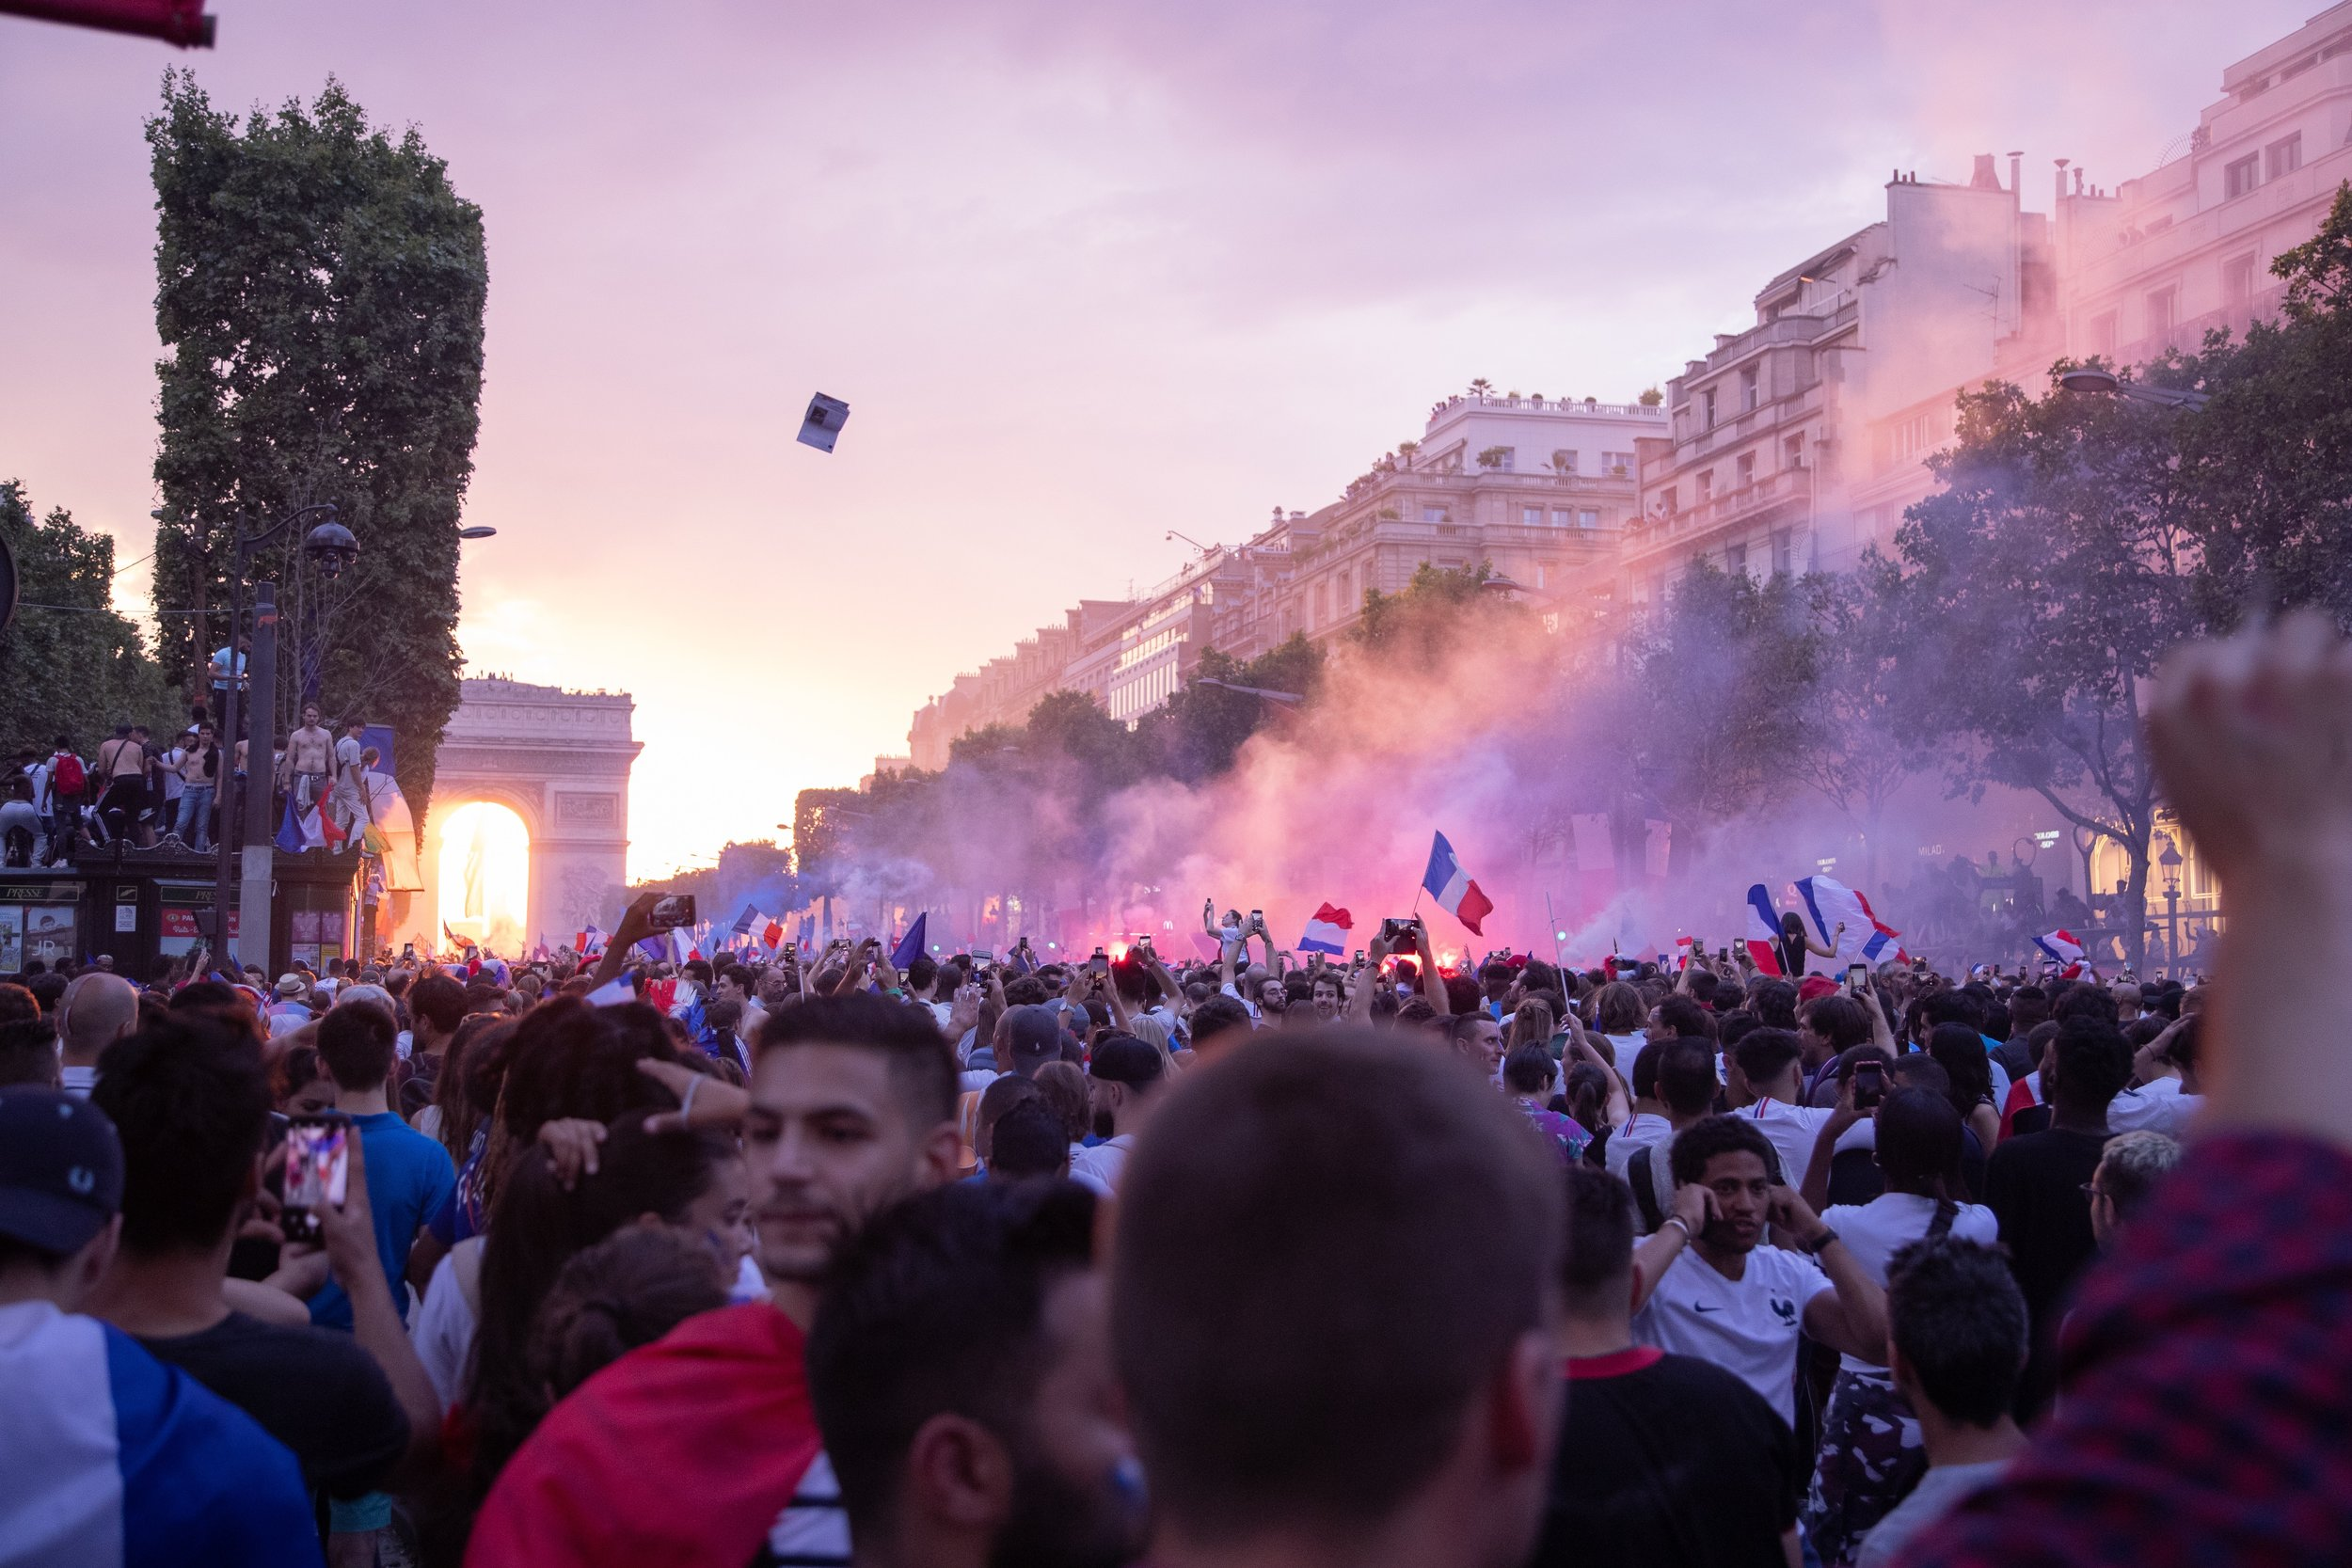 France fans celebrating the teams victory in the final of the 2018 FIFA World Cup along the Champs-Élysées in Paris.